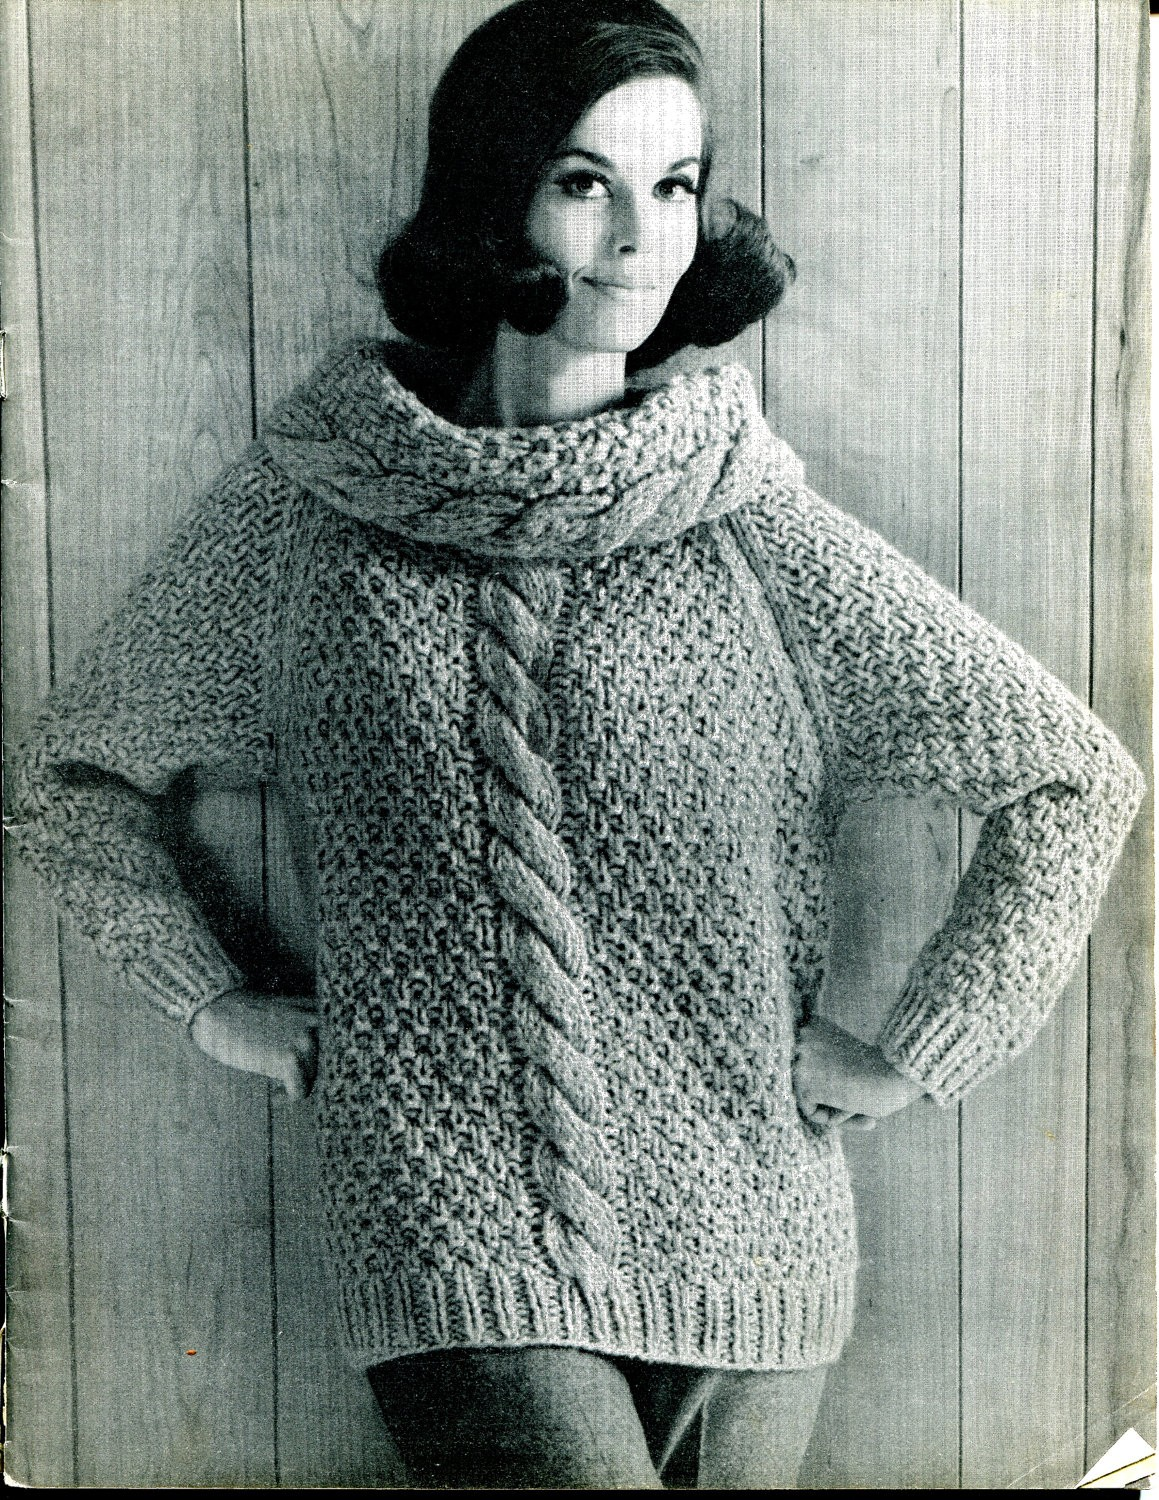 Sweater Knitting Patterns : Pics Photos Free Knitted Sweater Patterns Knit Sweater Patterns Free